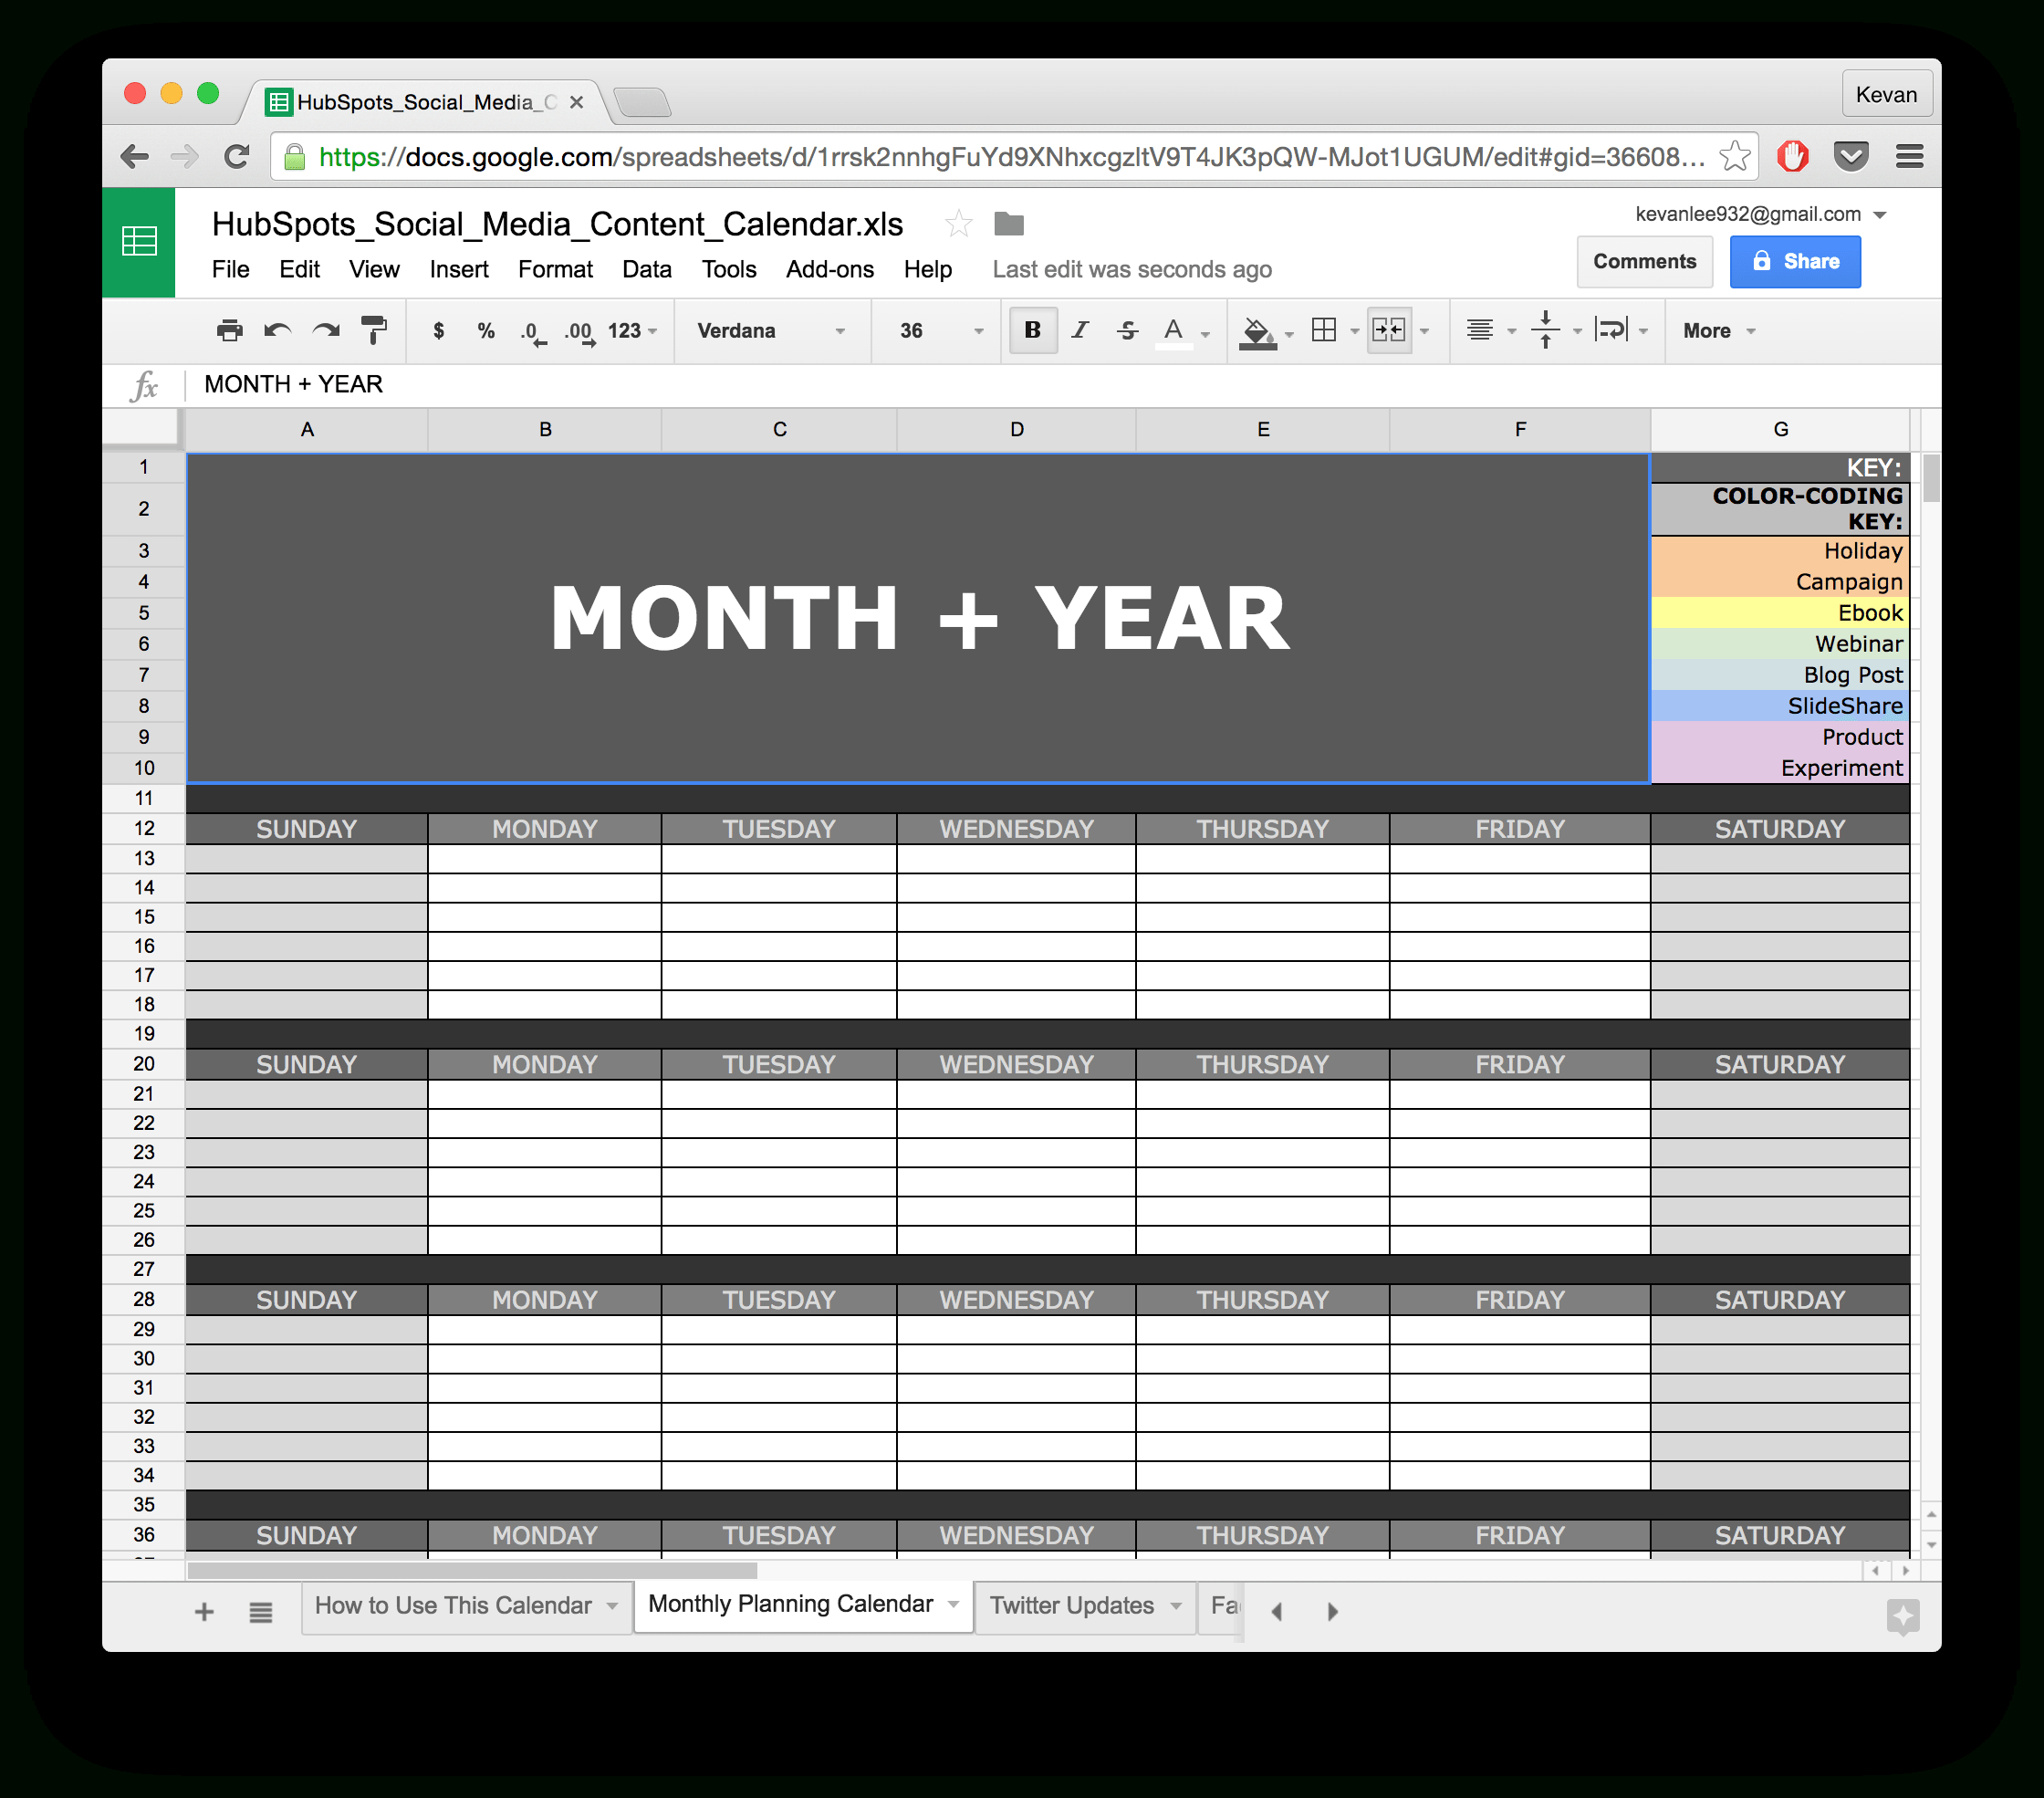 Budget Spreadsheet Google Sheets Throughout 10 Readytogo Marketing Spreadsheets To Boost Your Productivity Today